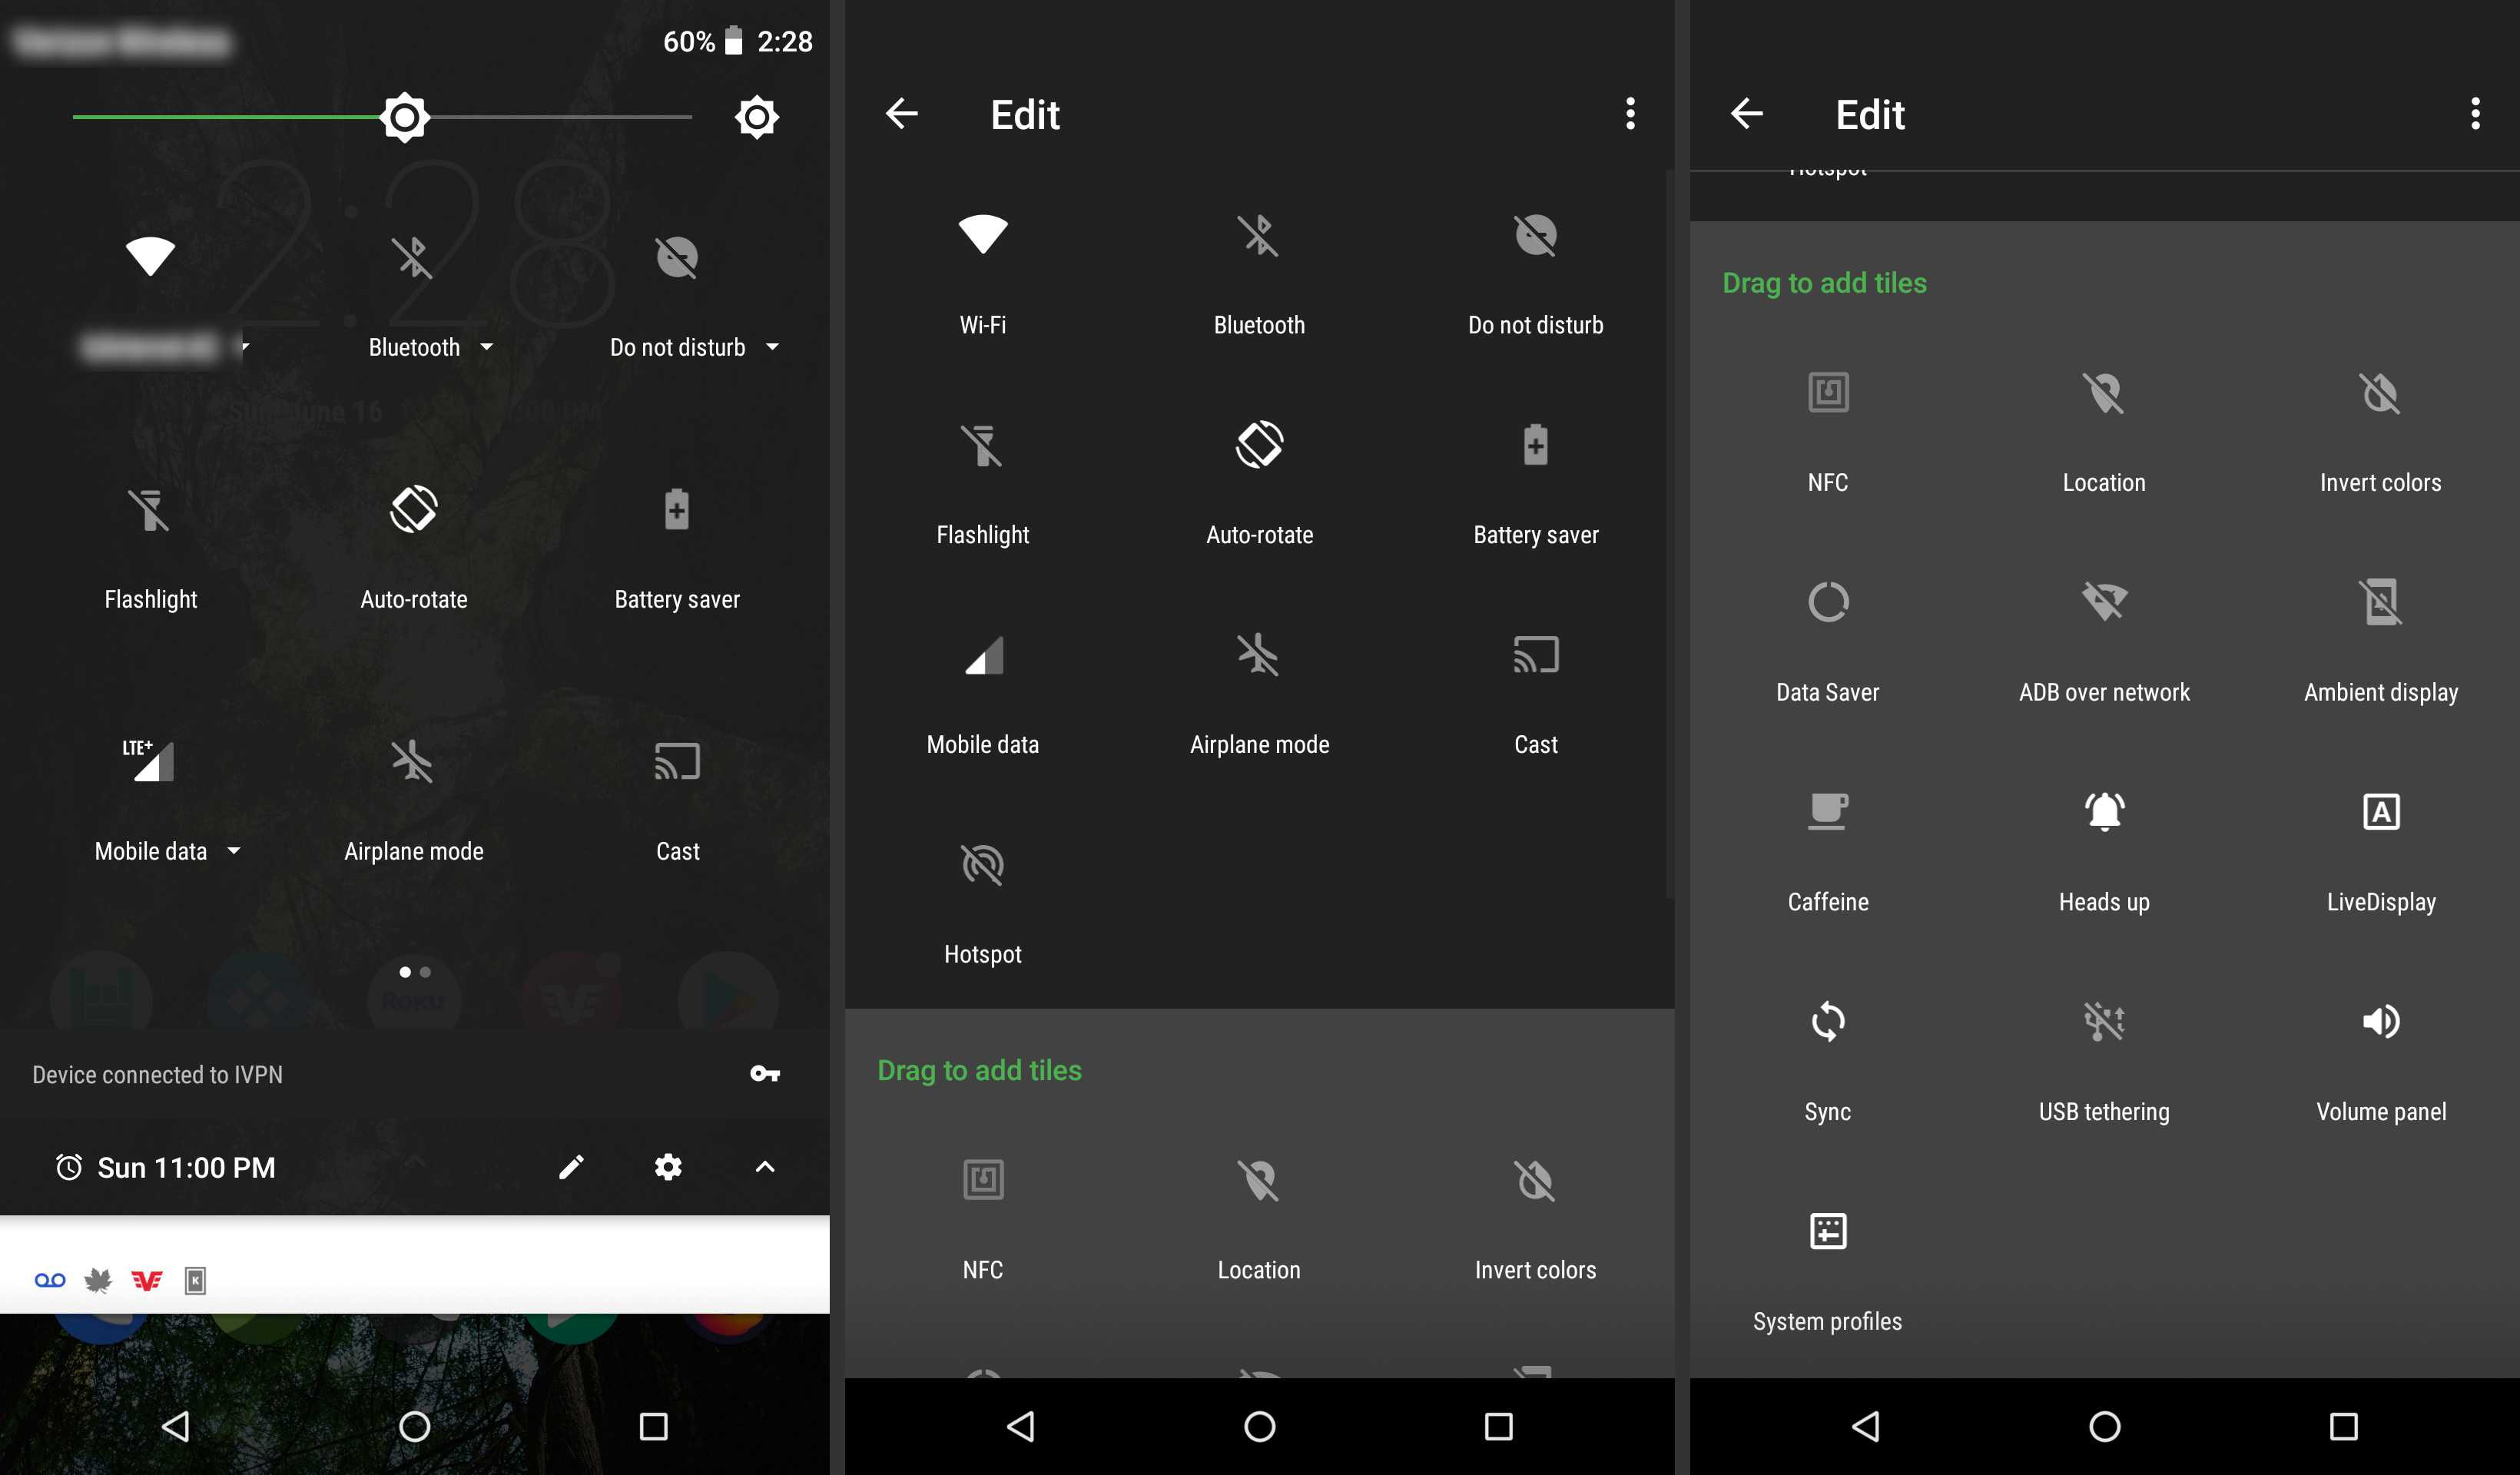 How to Use the Quick Settings Menu on Android